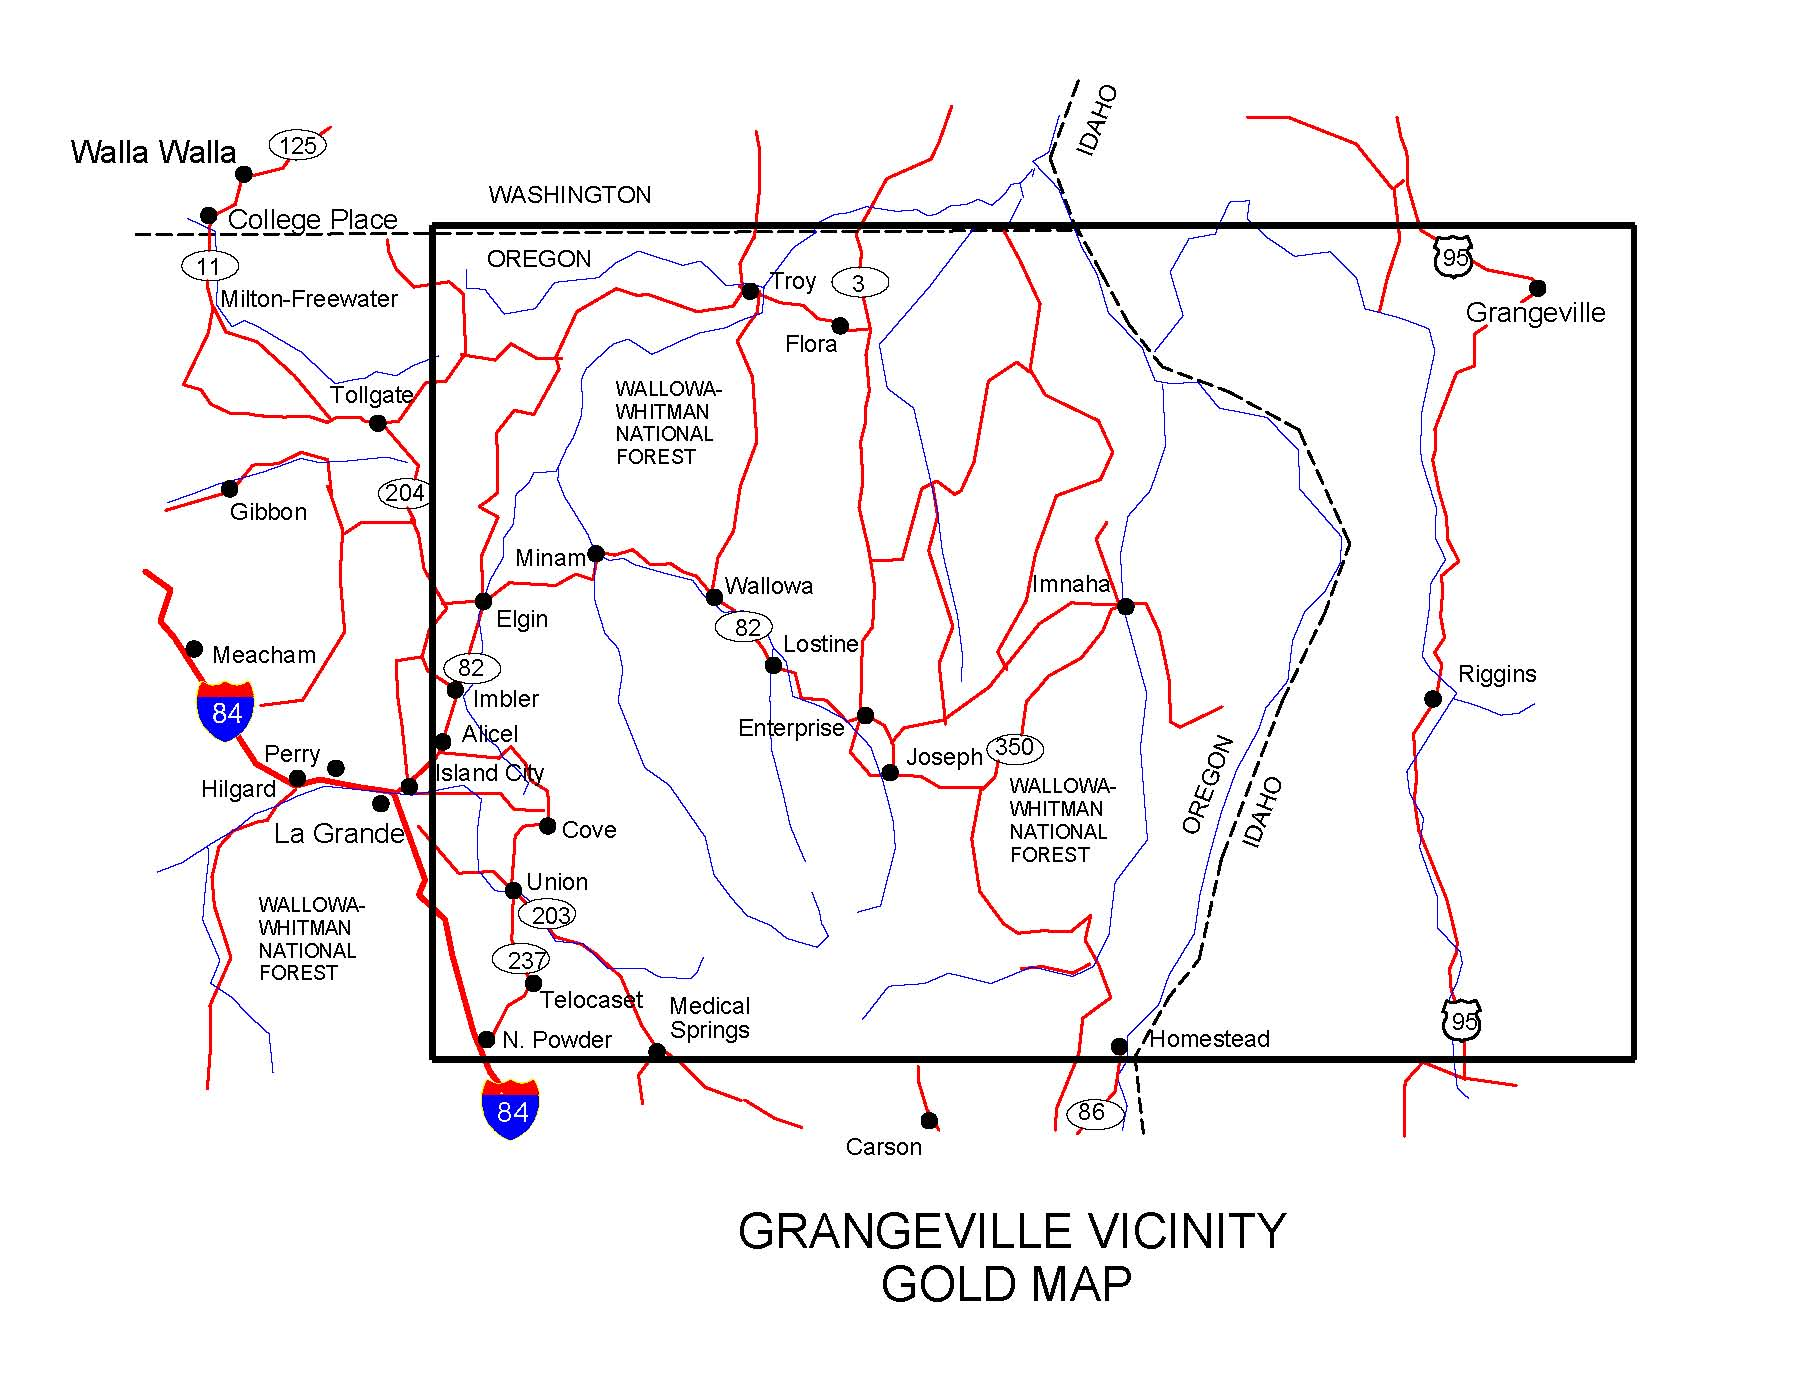 OREGON GOLD MAPS, GOLD PLACERS AND GOLD PANNING AND METAL ... on gold mining in oregon, gold in washington state, gold panning locations in oregon, gold in north america map, gold prospecting in oregon, gold in south carolina map, gold in canada map, gold in australia map, gold usa map, gold in north carolina, gold in south dakota map, gold in south africa map, gold in new mexico, gold in mexico map, gold panning rules in oregon, gold finds in oregon, gold lake oregon, gold in bend oregon, gold areas in oregon, gold in rocks in oregon,